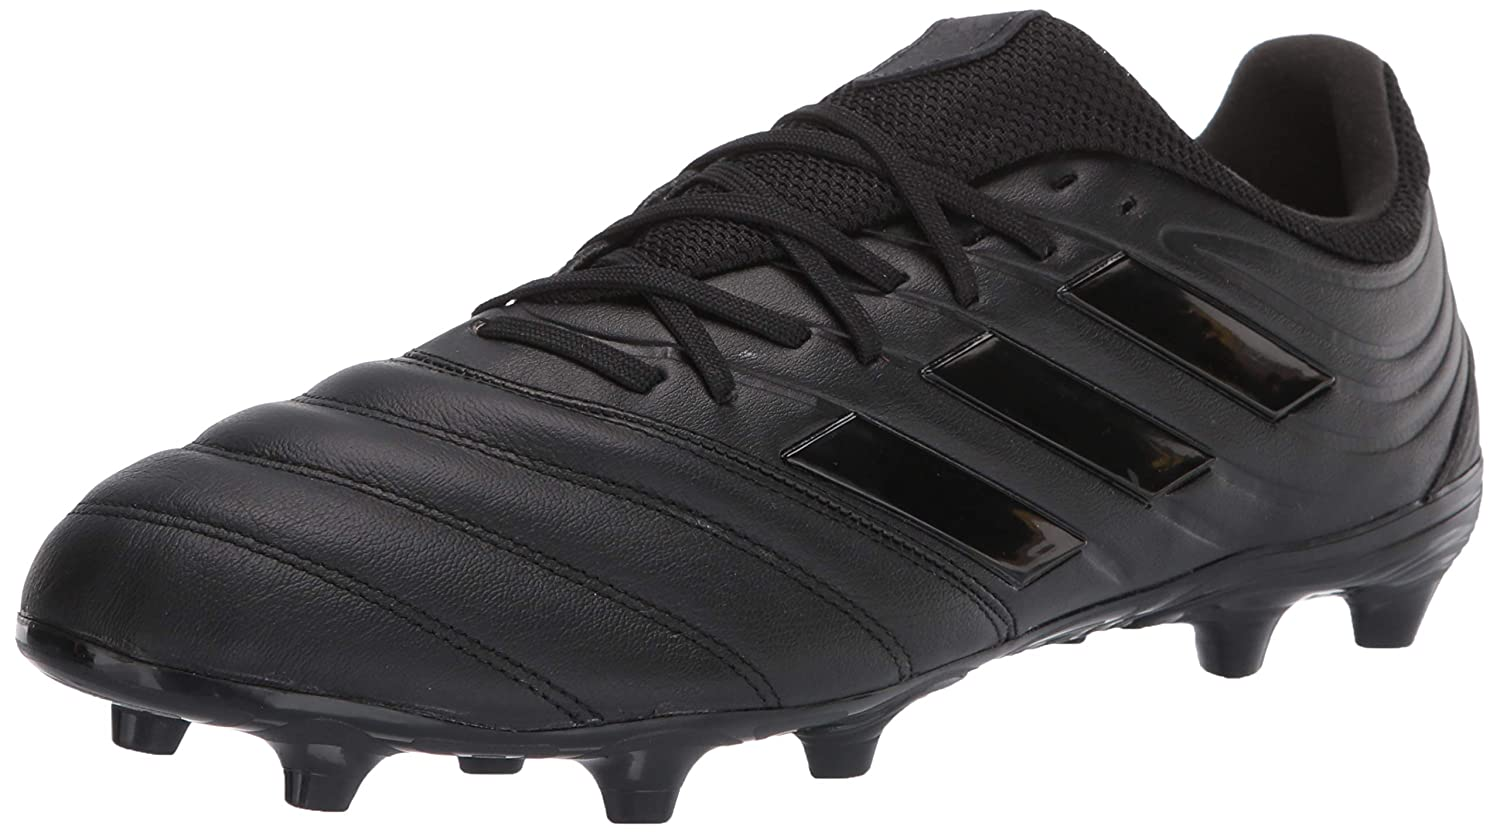 Copa 20.3 Firm Ground Boots Soccer Shoe